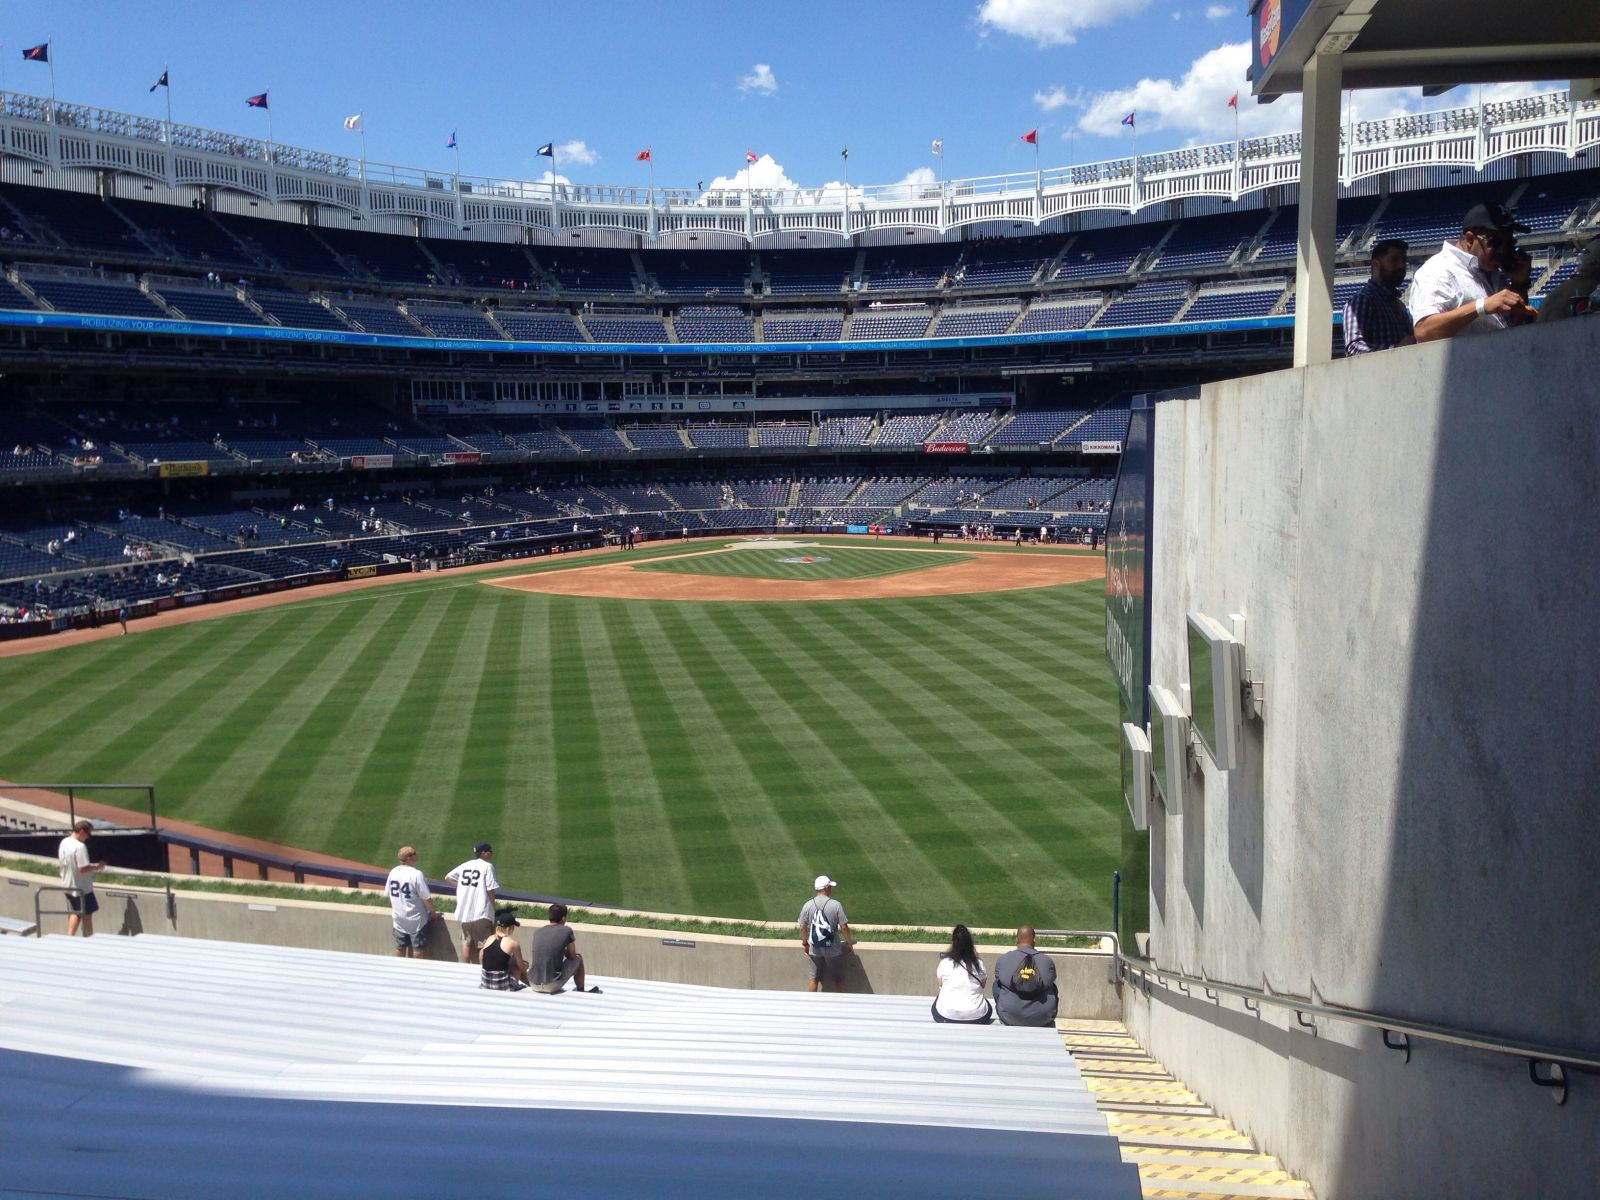 New York Yankees Seat View for Yankee Stadium Section 201, Row 23, Seat 1